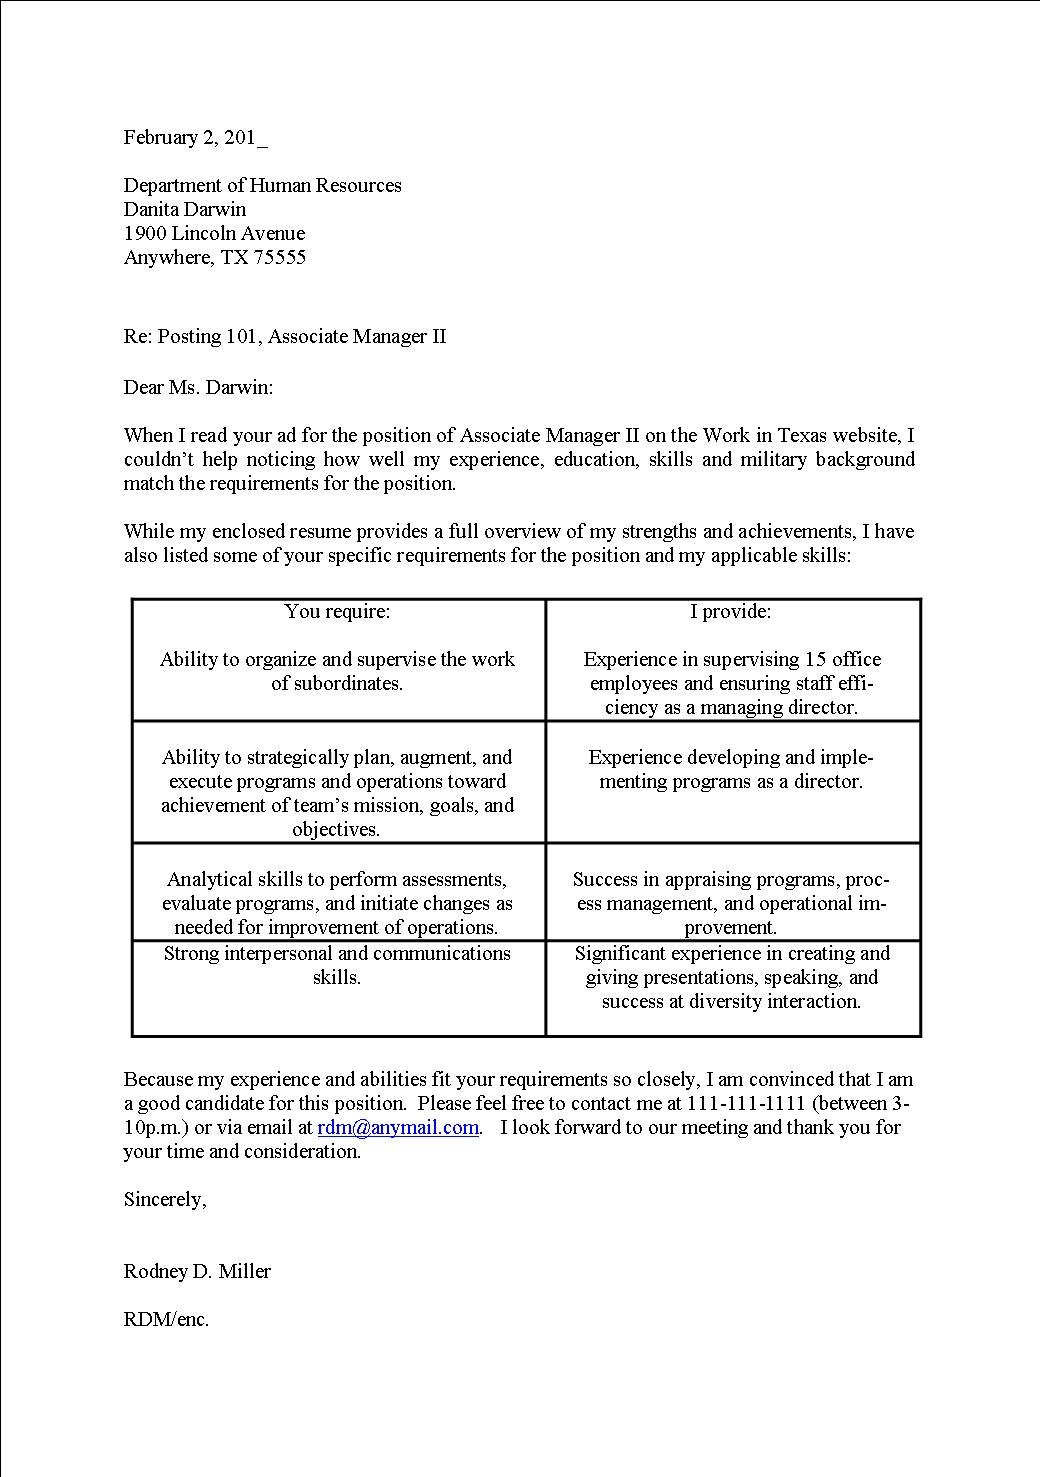 7c46484bc70a9331315249f35100882c T Cover Letter Template on proposal template, certificates template, resume template, cover letters for teachers, cover letters for employment, cover letters stand out, cover letters do you sign, thank you template, medical refund request forms template, cover lettter, cover sheet, curriculum vitae template, memo template, cover letters special ed, personal statement template, cover leter,